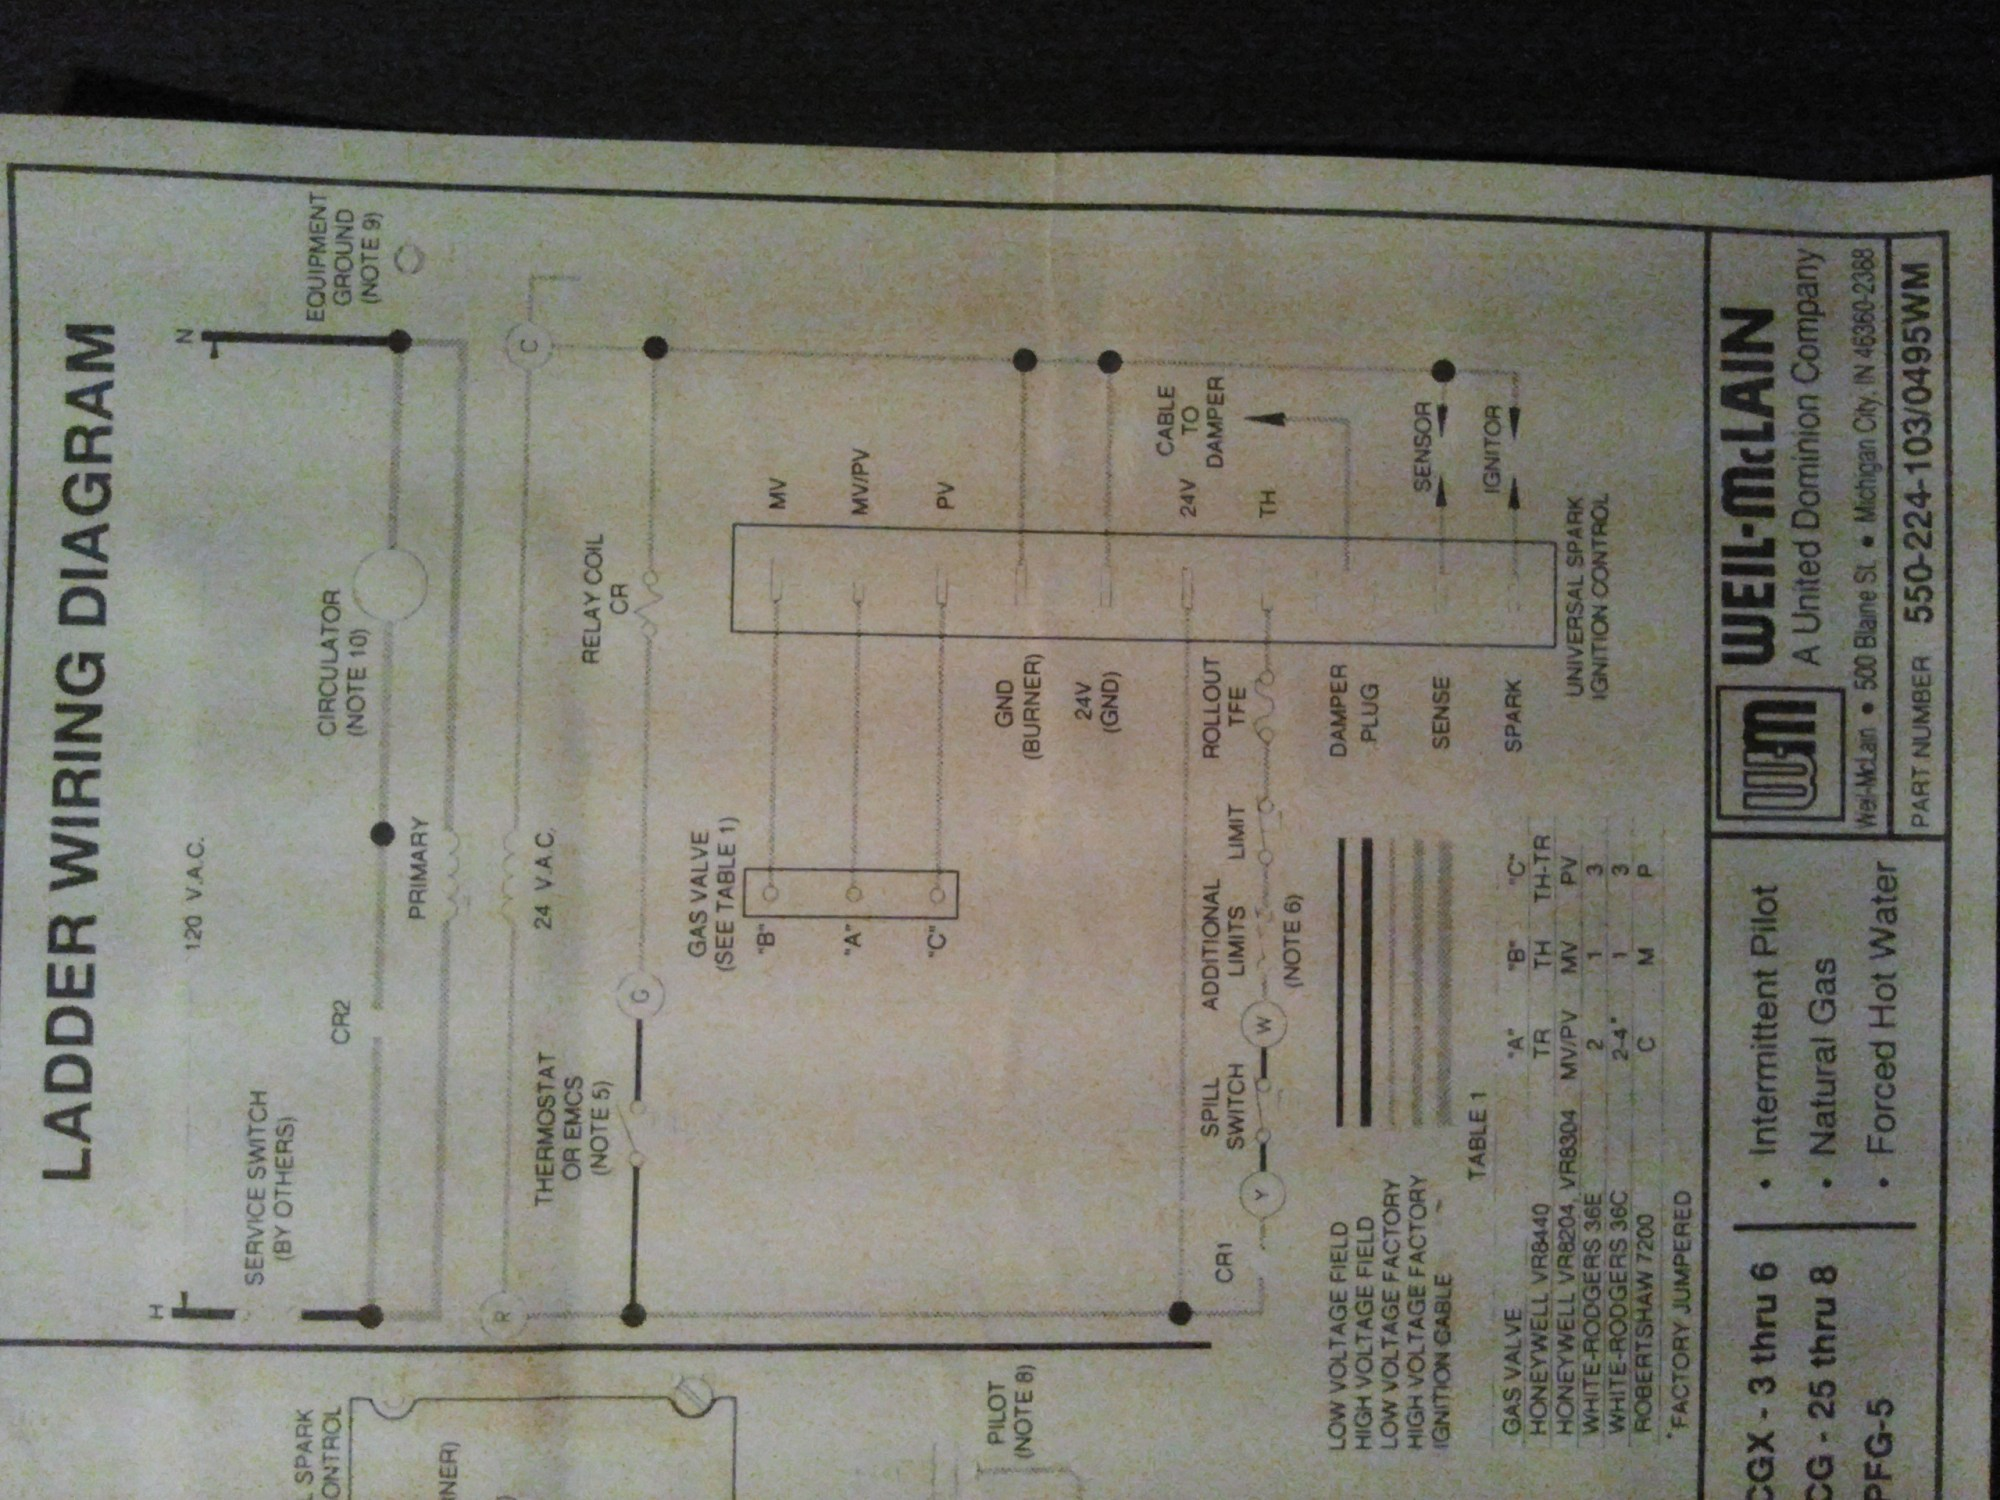 hight resolution of weil mclain boiler wiring diagram